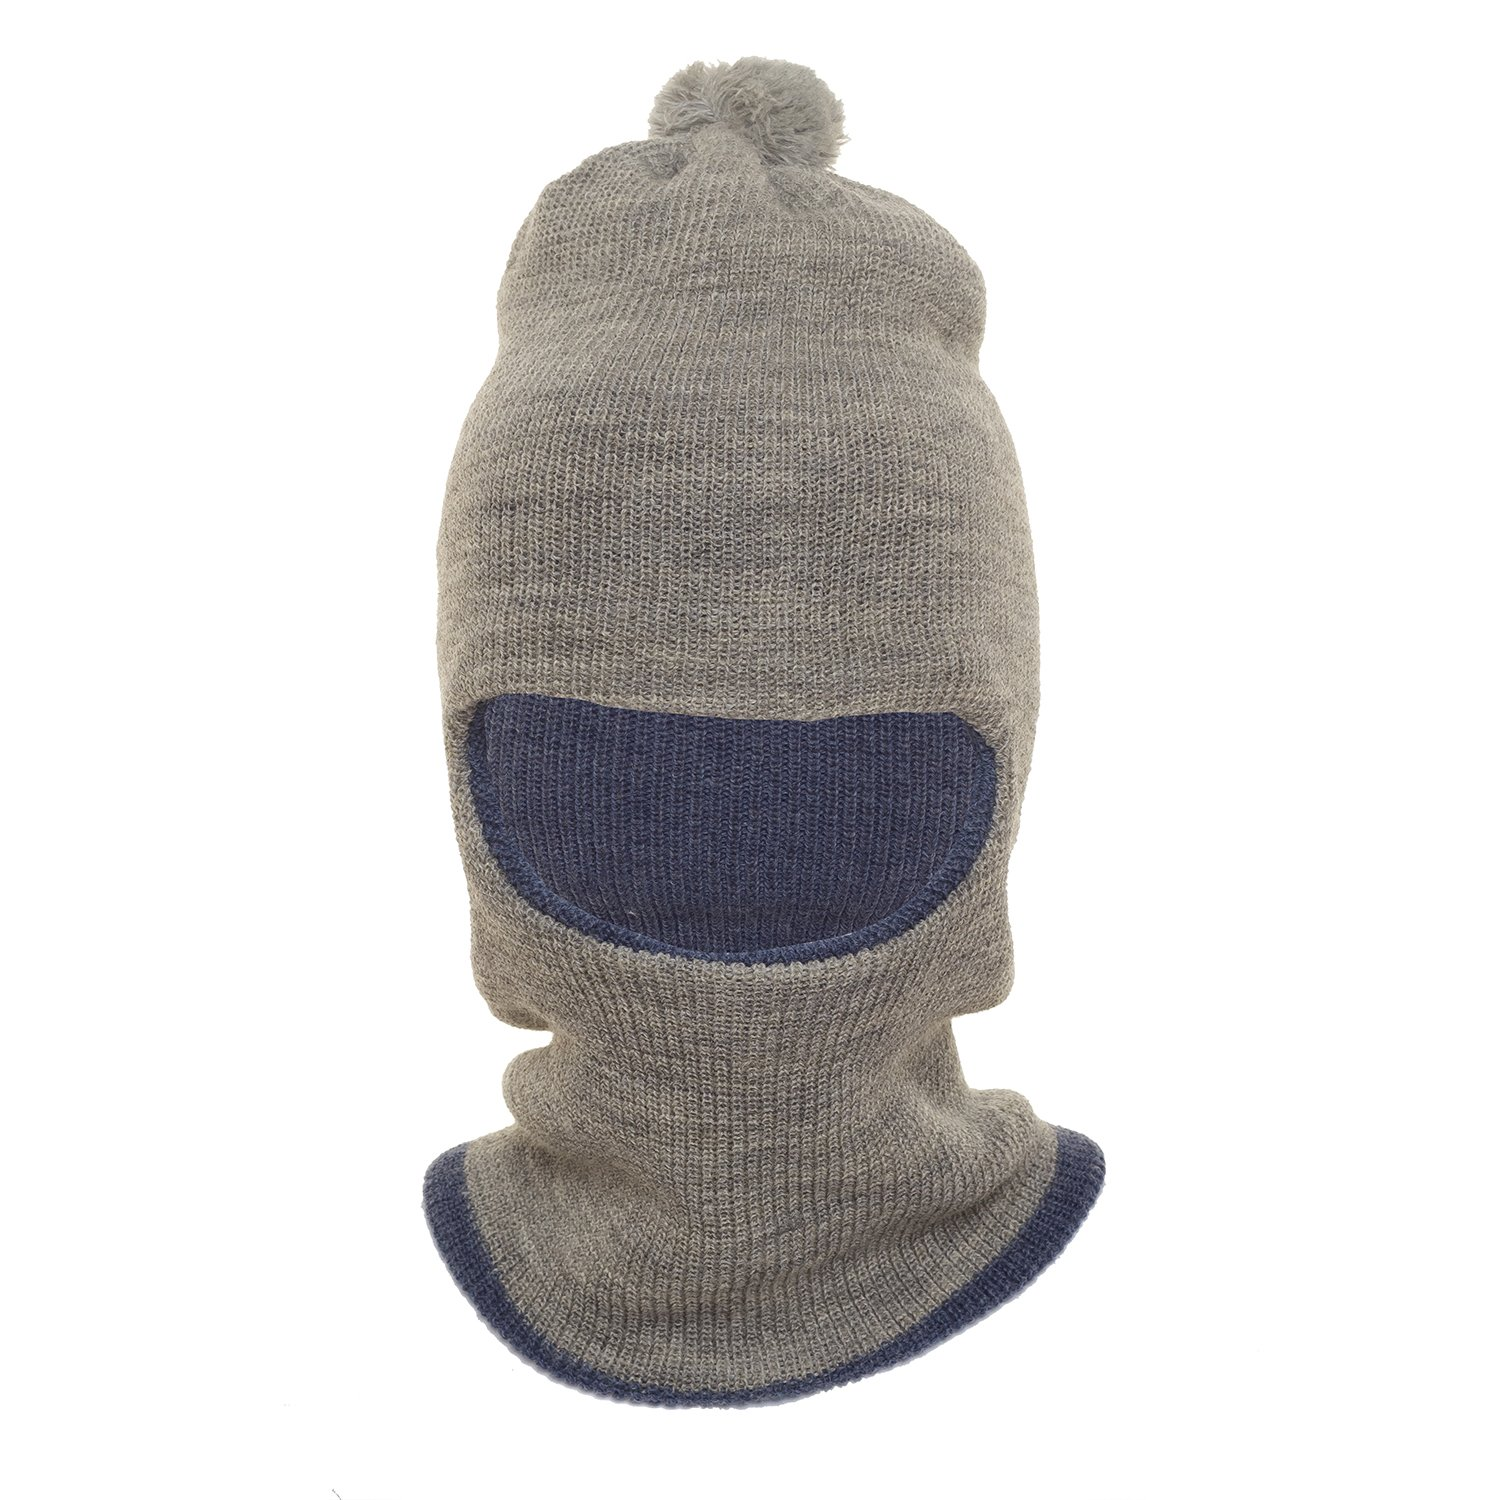 Hiver Pure Woolen Balaclava Cap Winter Cap- Unisex Monkey Cap-Thick full  cover Riding Bike Dust Wind Sun Protection Face Mask WINTER SPECIAL MULTI  STYLE ... 64552bb0e35